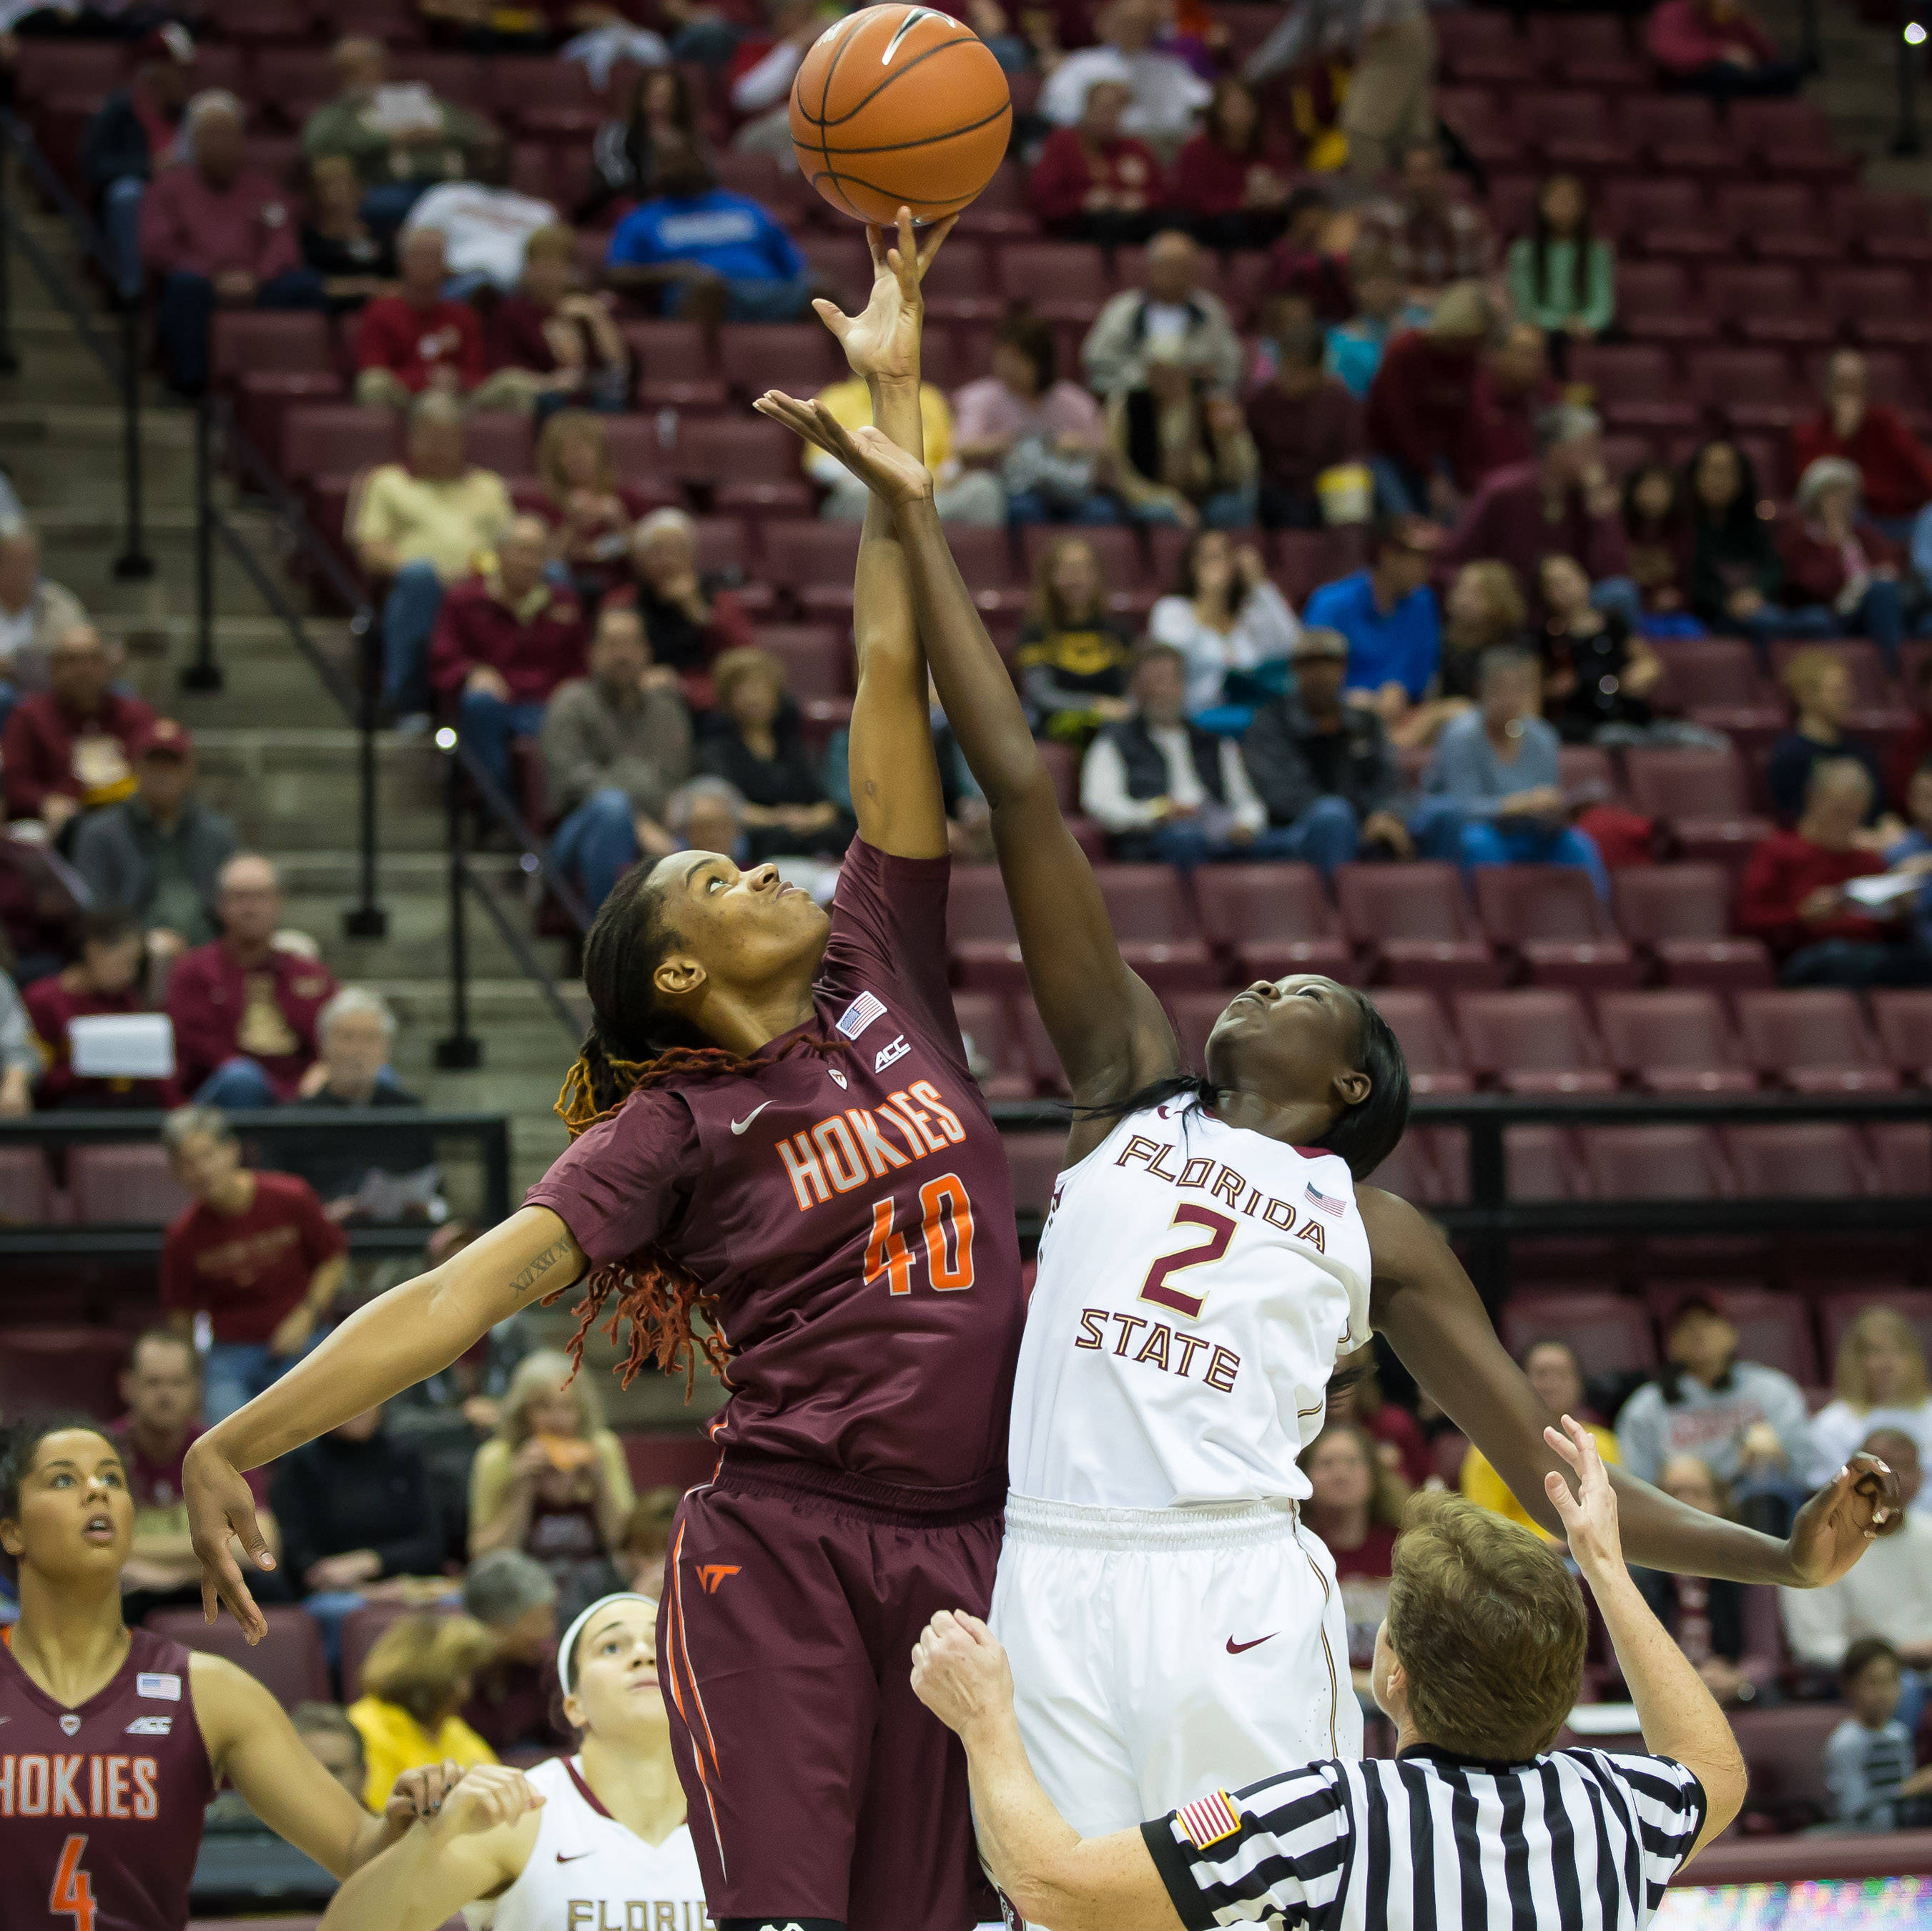 Florida State vs. Virginia Tech Photos